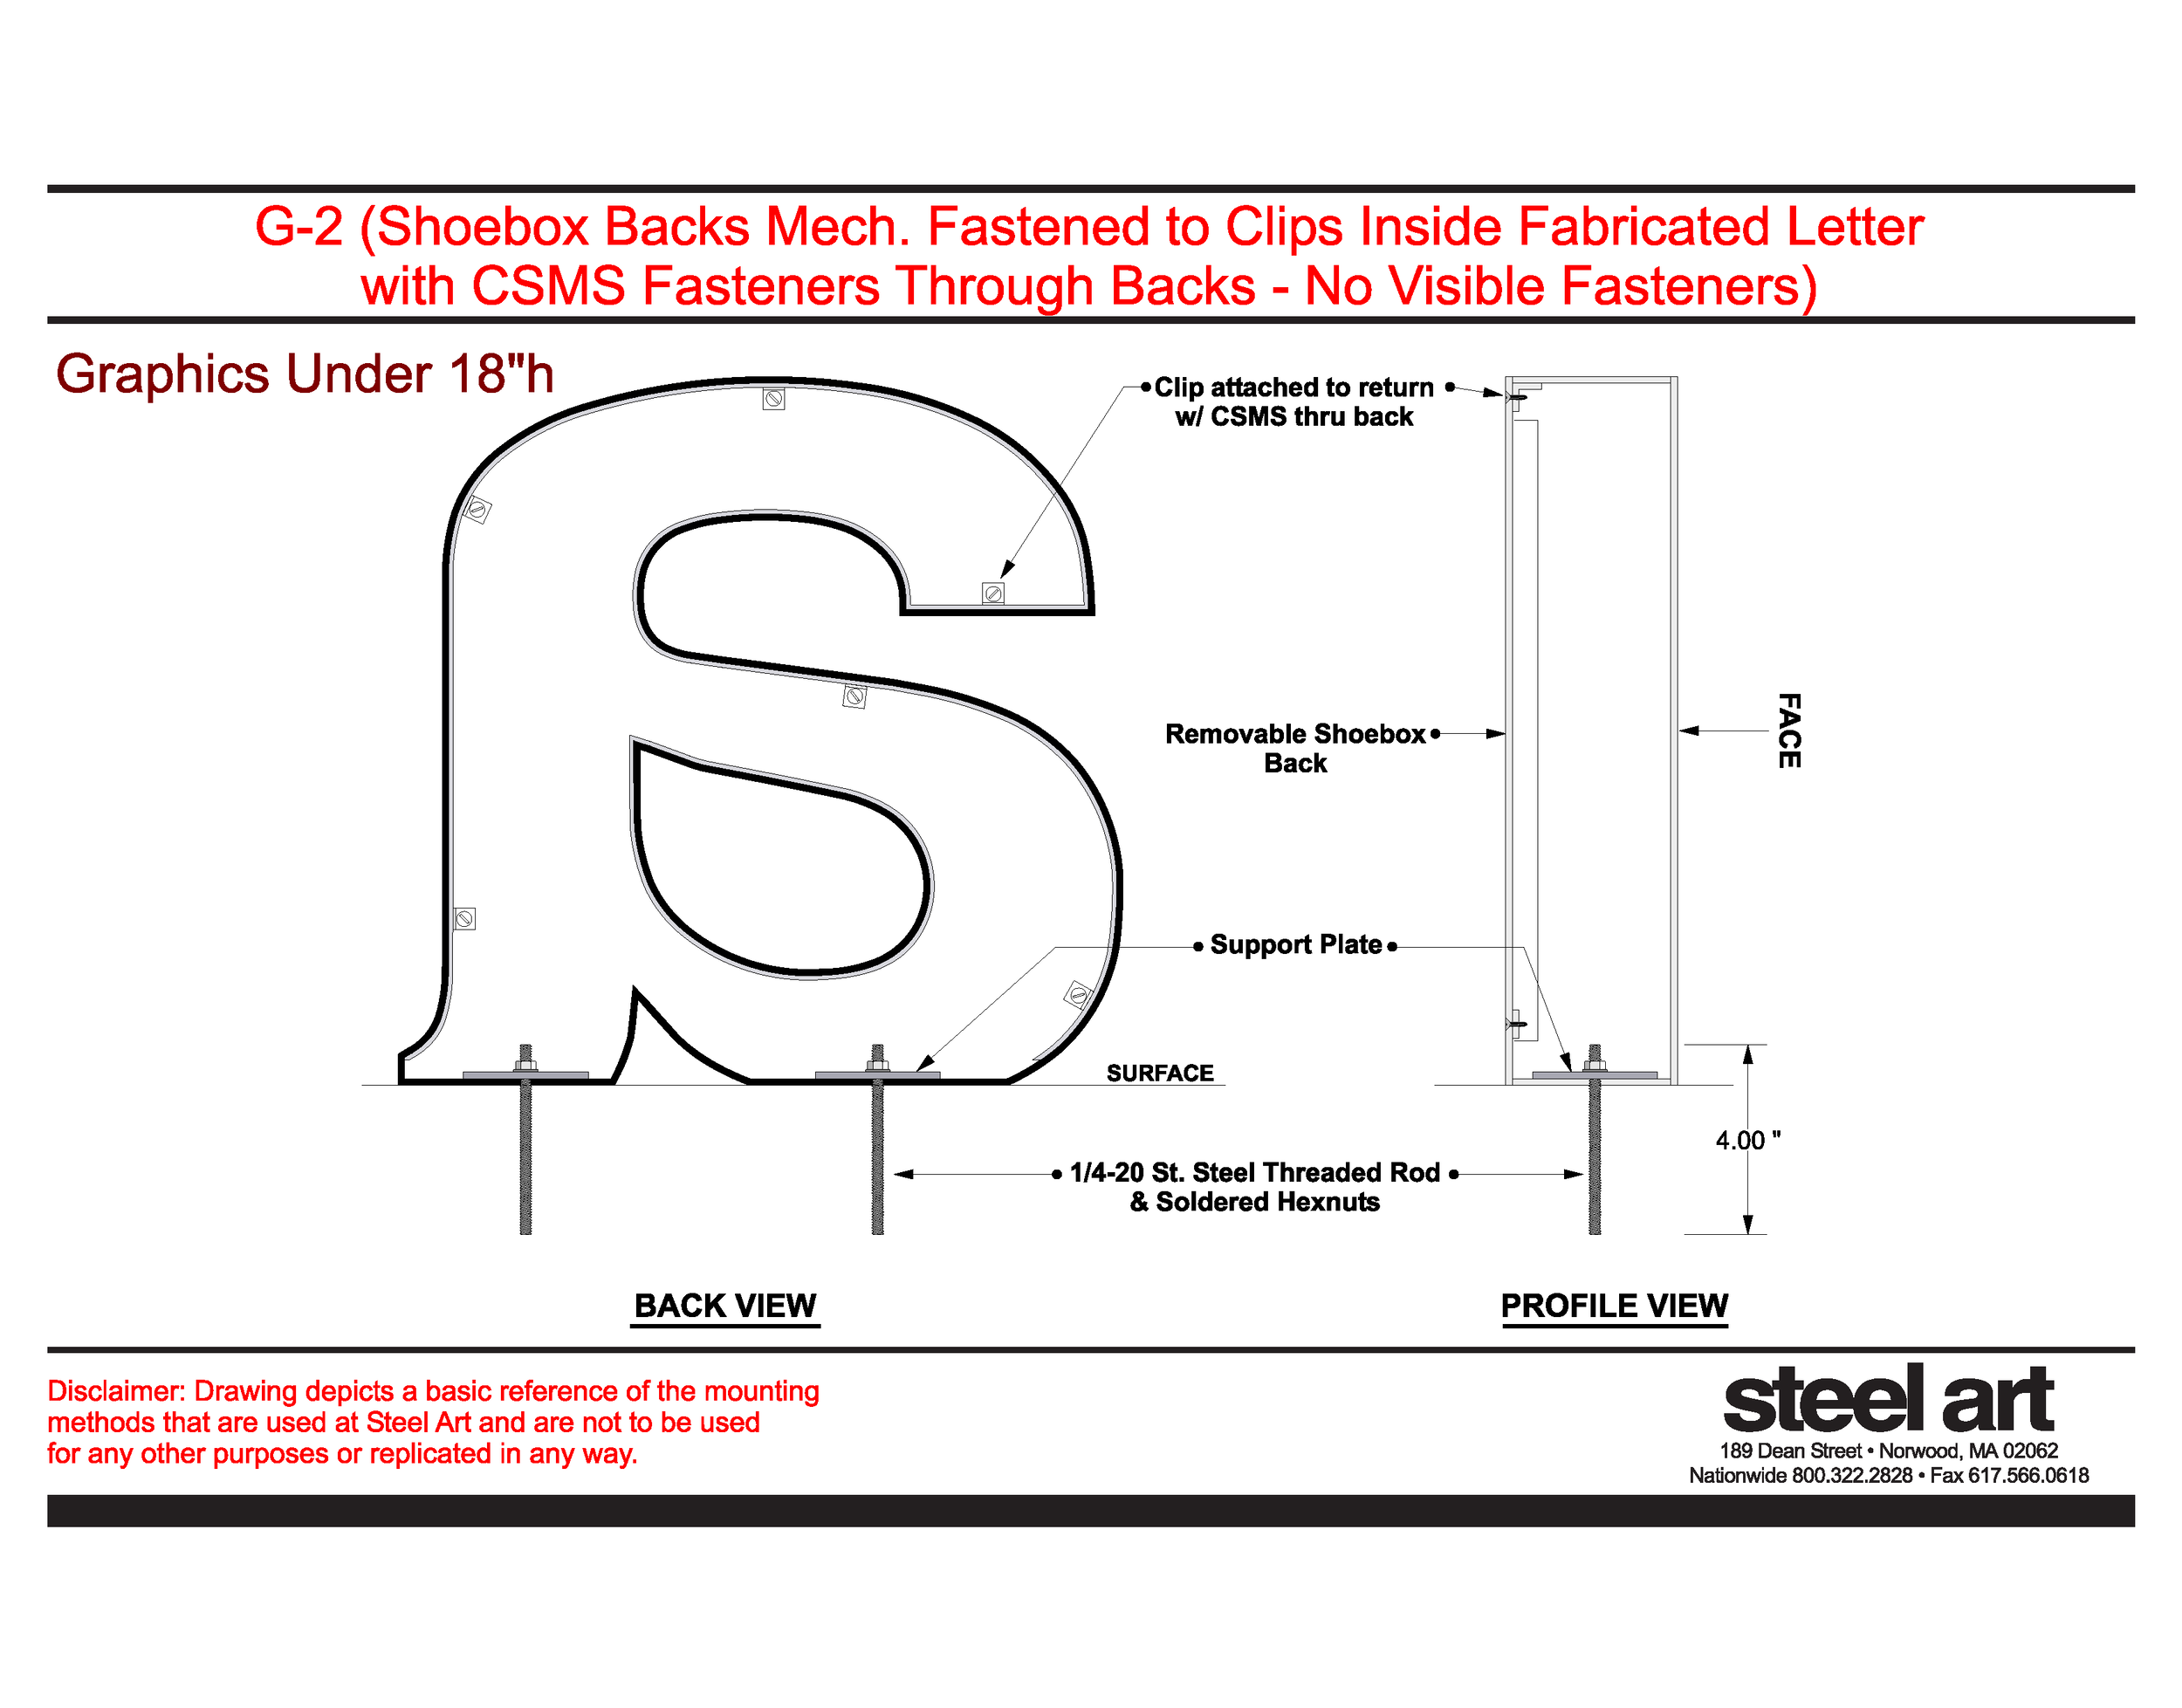 G2 Flattened Bottoms - No VIsible Fasteners (Shoebox).png